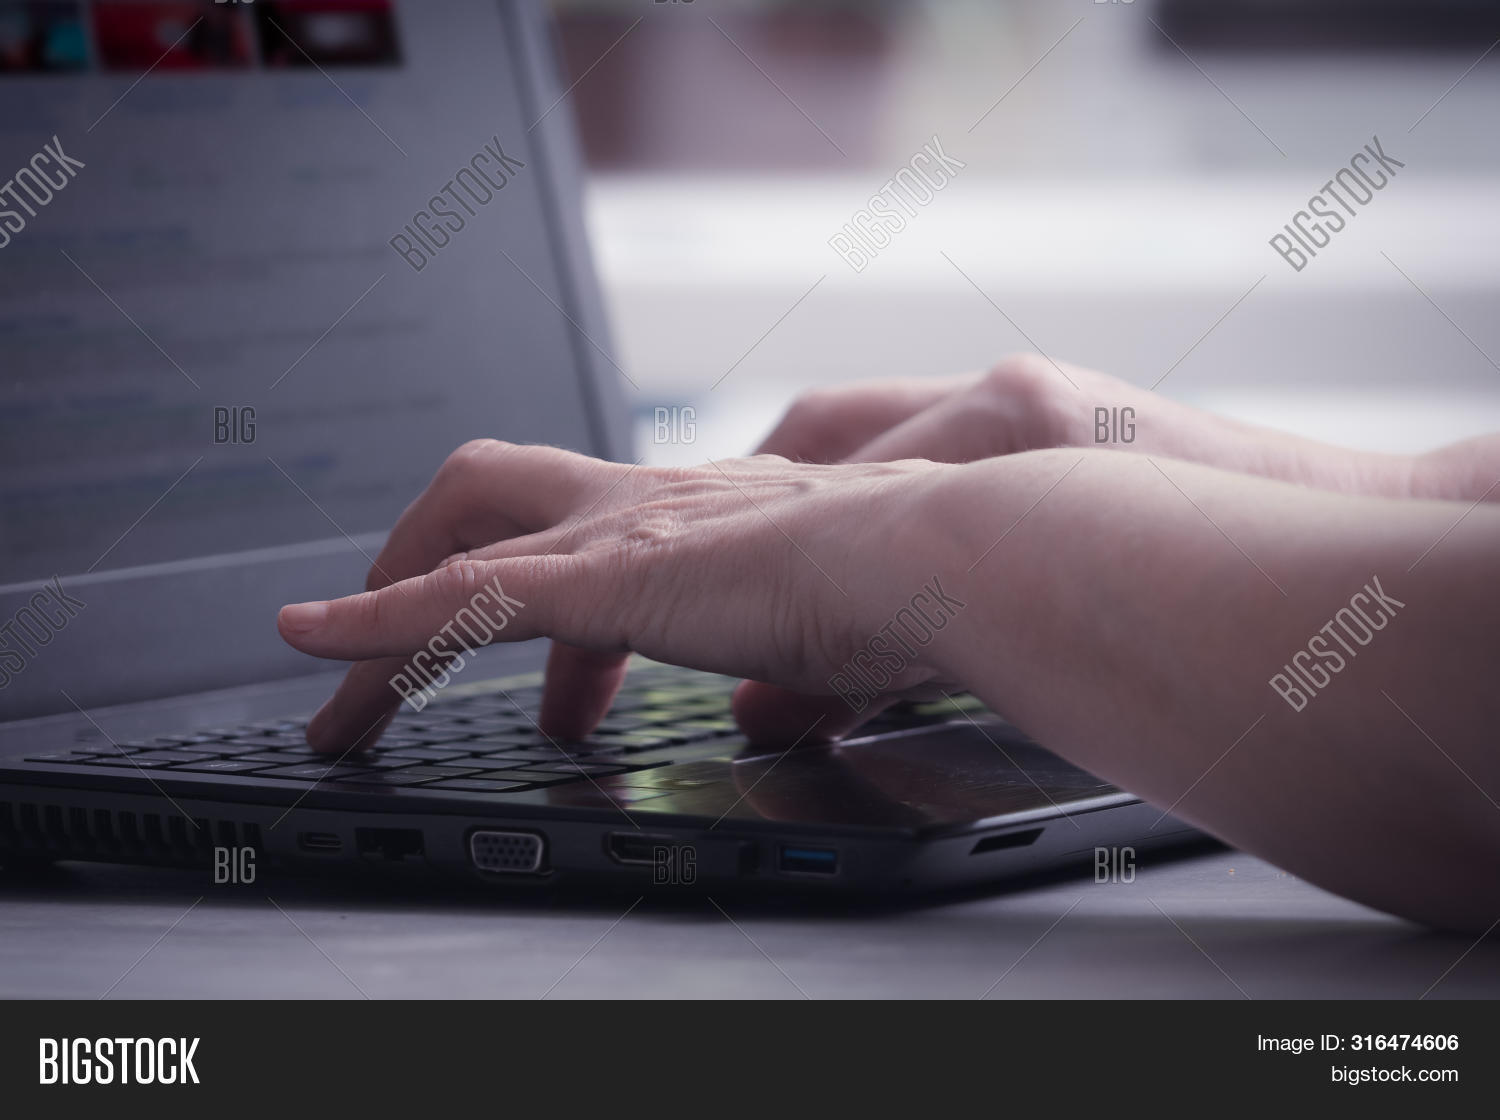 adult,age,aged,apartment,caucasian,close,closeup,computer,connection,crying,day,detail,elderly,emailing,exercise,expression,female,finger,hands,home,house,indoor,internet,laptop,lifestyle,macro,mature,network,old,online,pensioner,problem,retired,retirement,sad,screen,sending,senior,sitting,social,technology,trouble,typing,unfit,up,using,web,woman,work,working